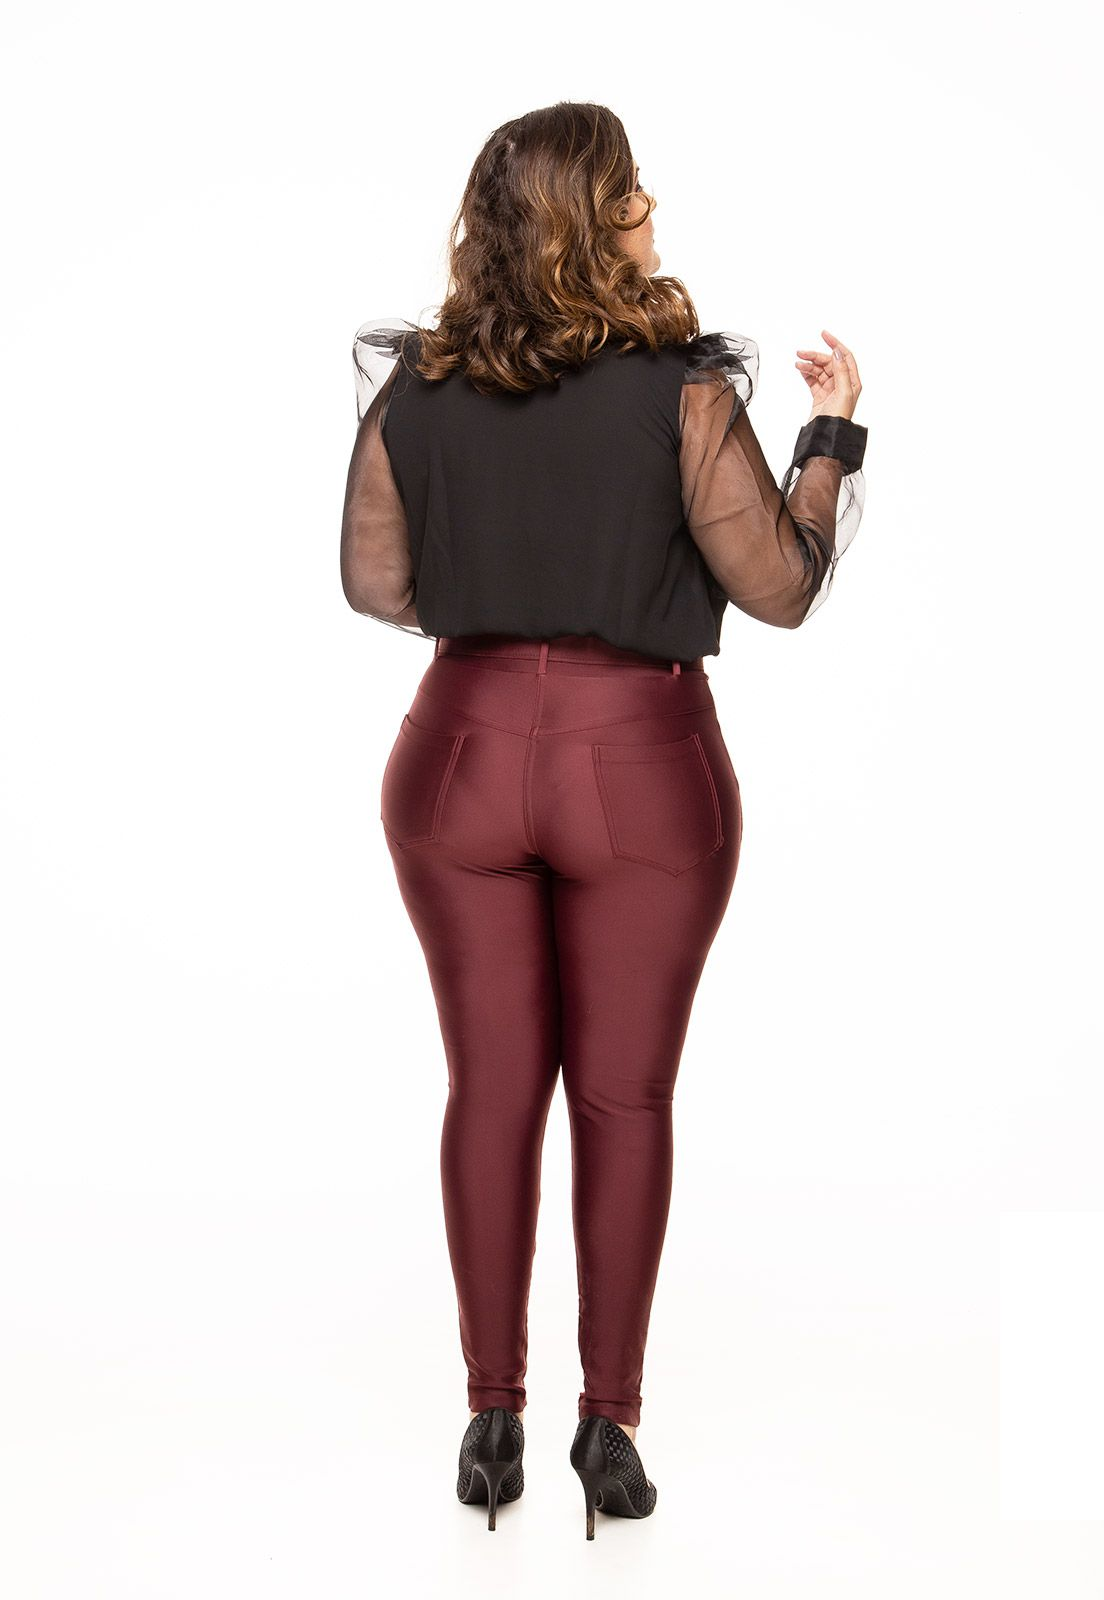 Body plus size mangas de organza